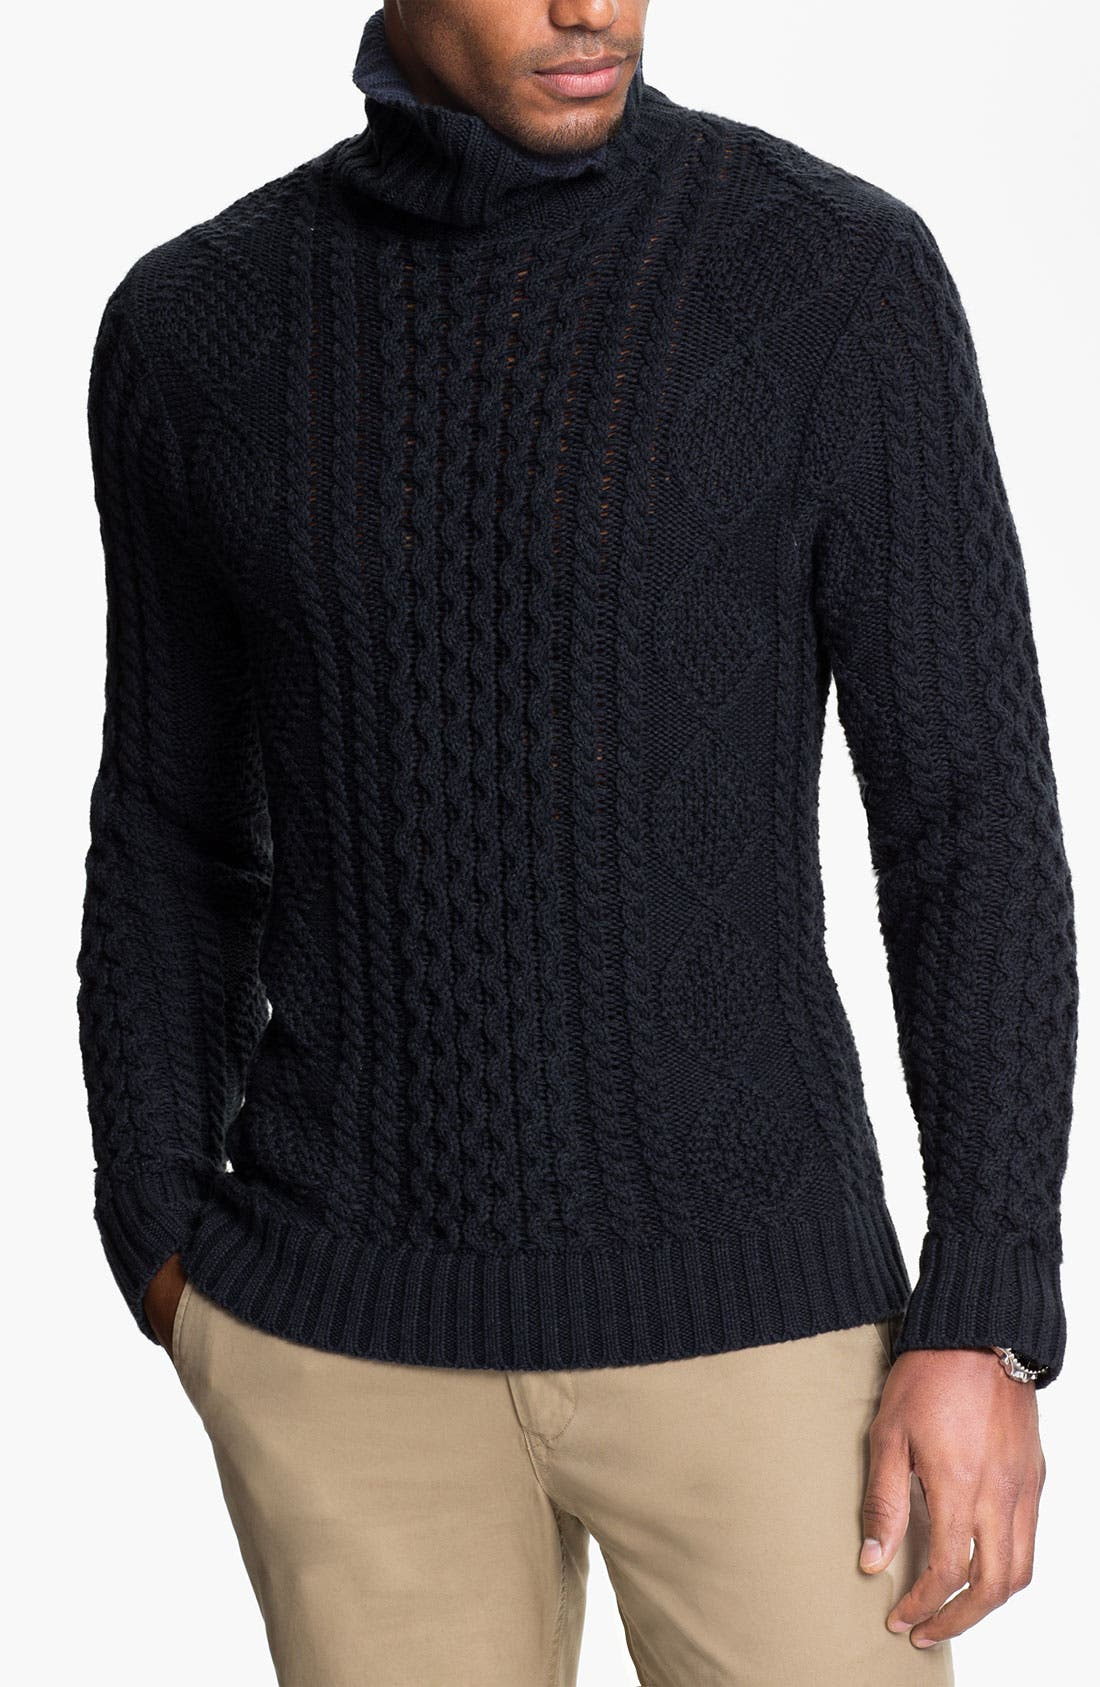 Main Image - Wallin & Bros. 'Norwood' Cable Knit Sweater